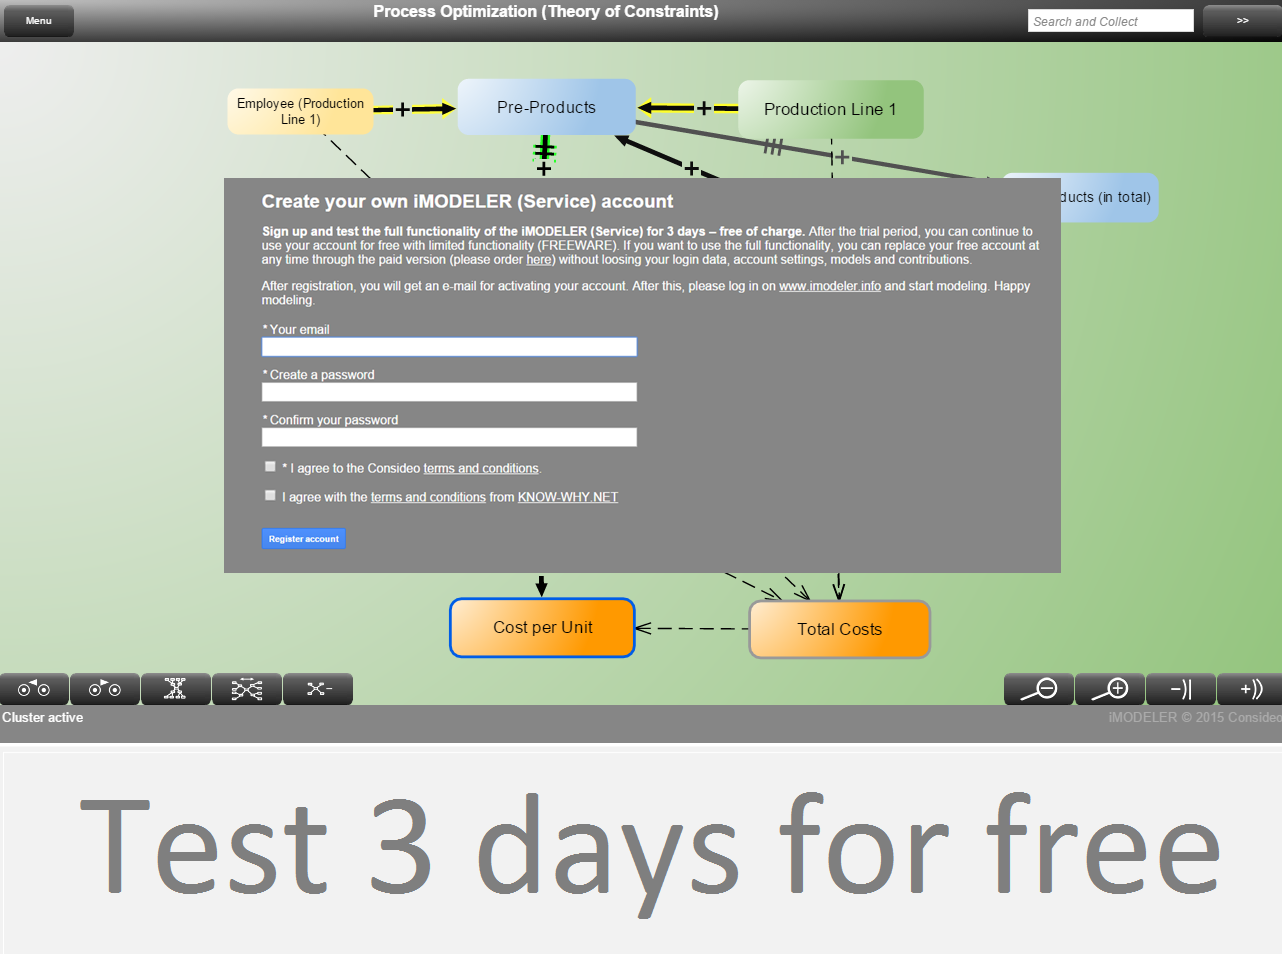 Test 3 days for free